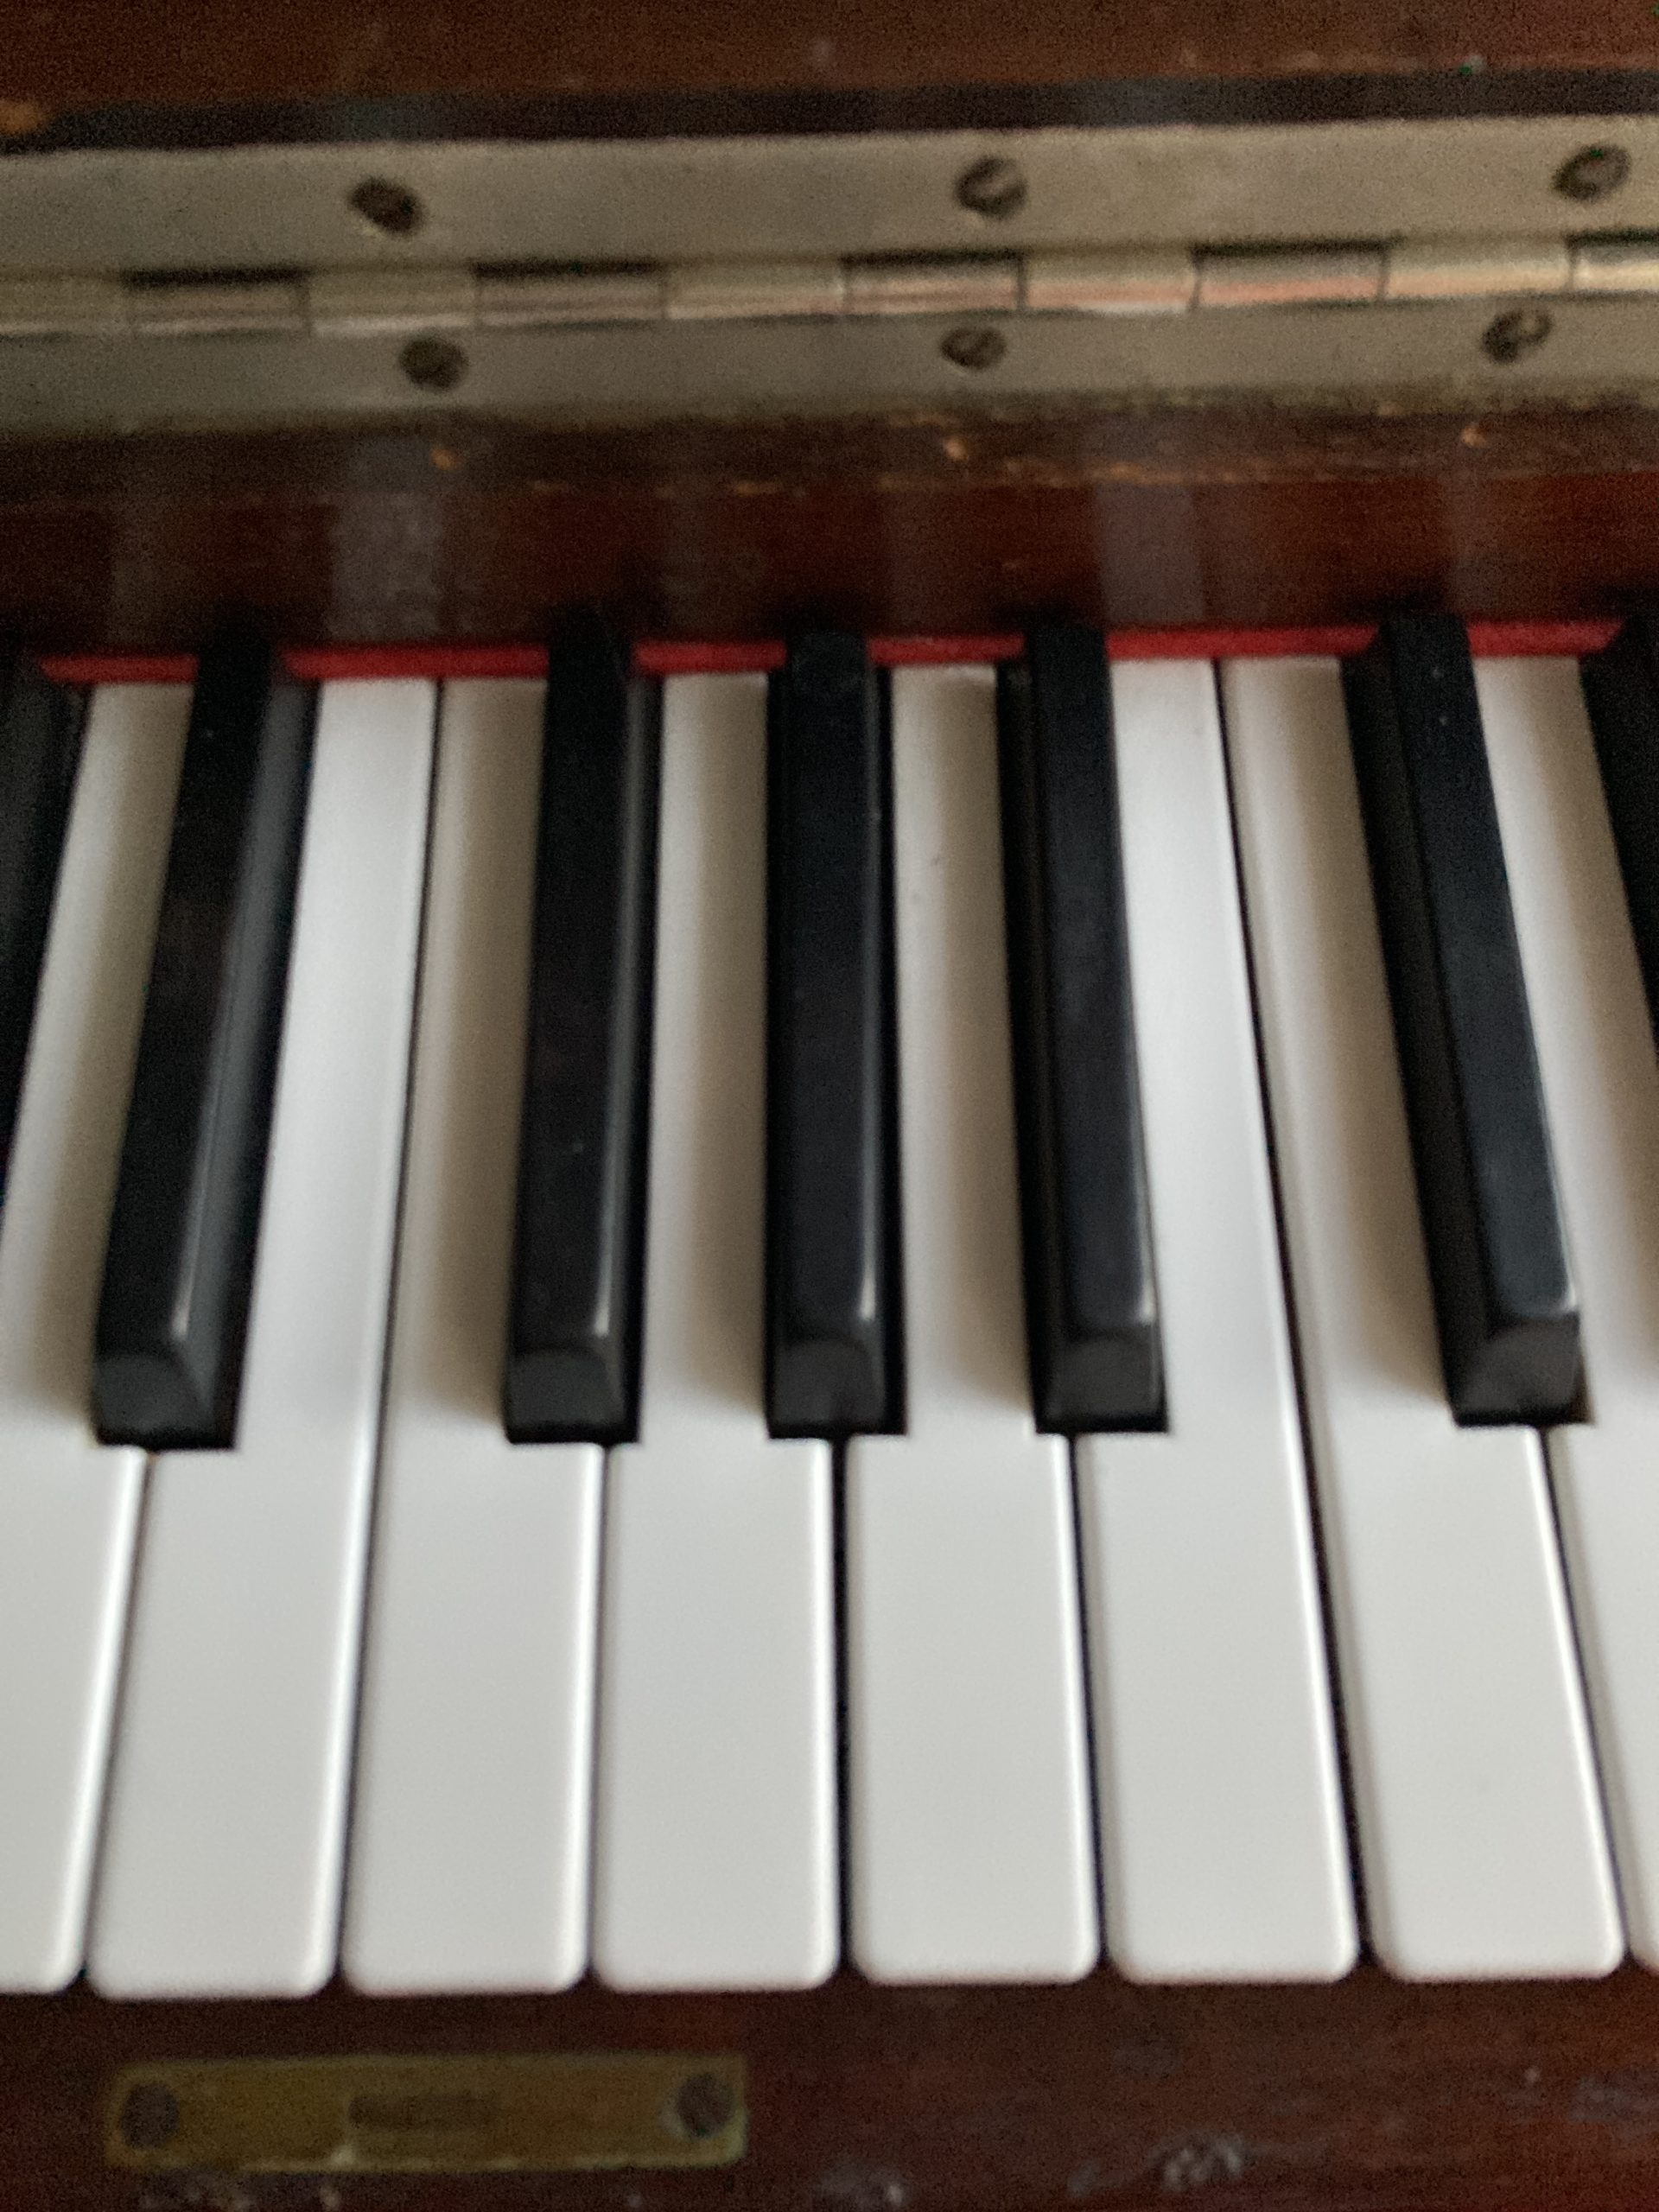 piano, keys, keyboard, music, instrument, playing, hands, fingers, sound